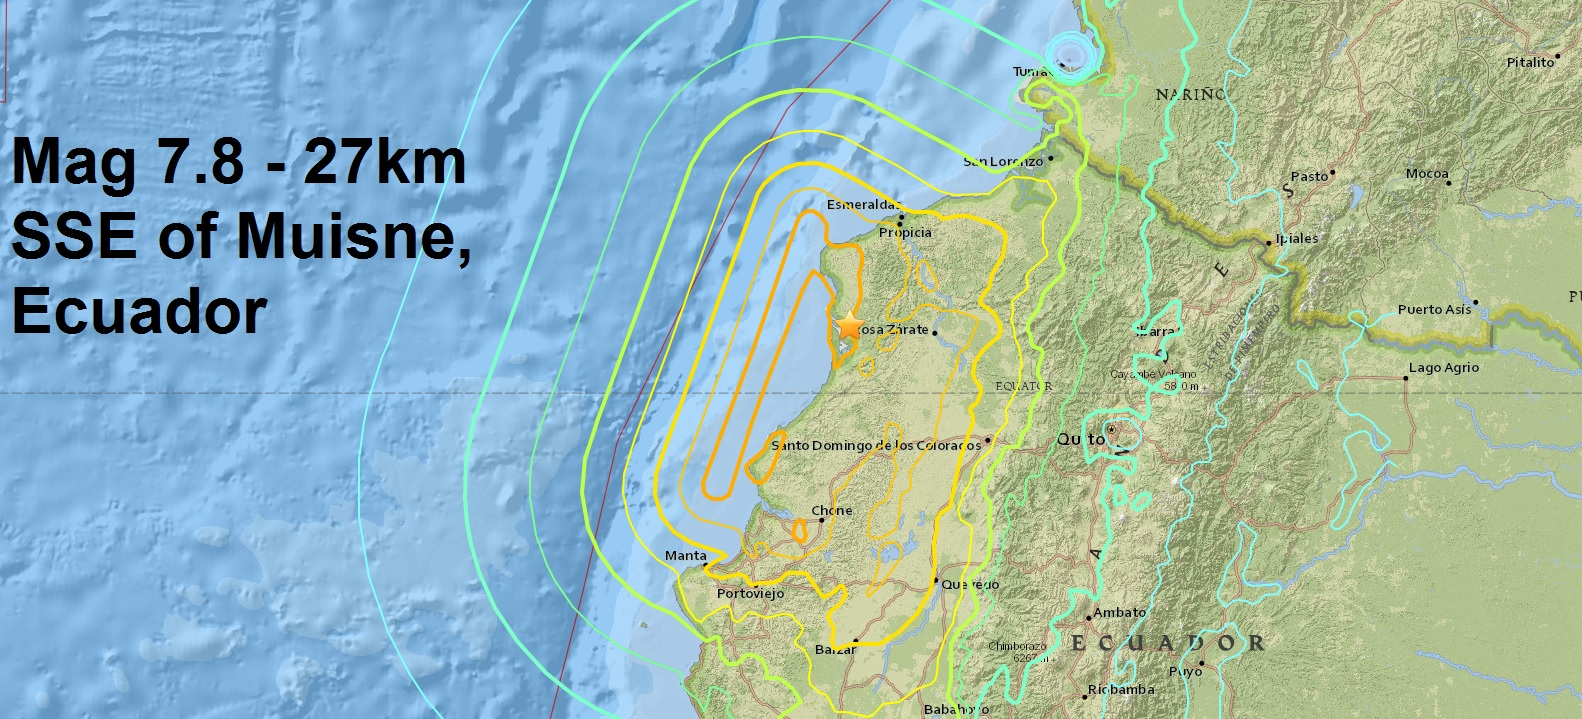 A mag 7.8 - quake strikes Ecuador as April threatens to be the deadliest month since the March 2011